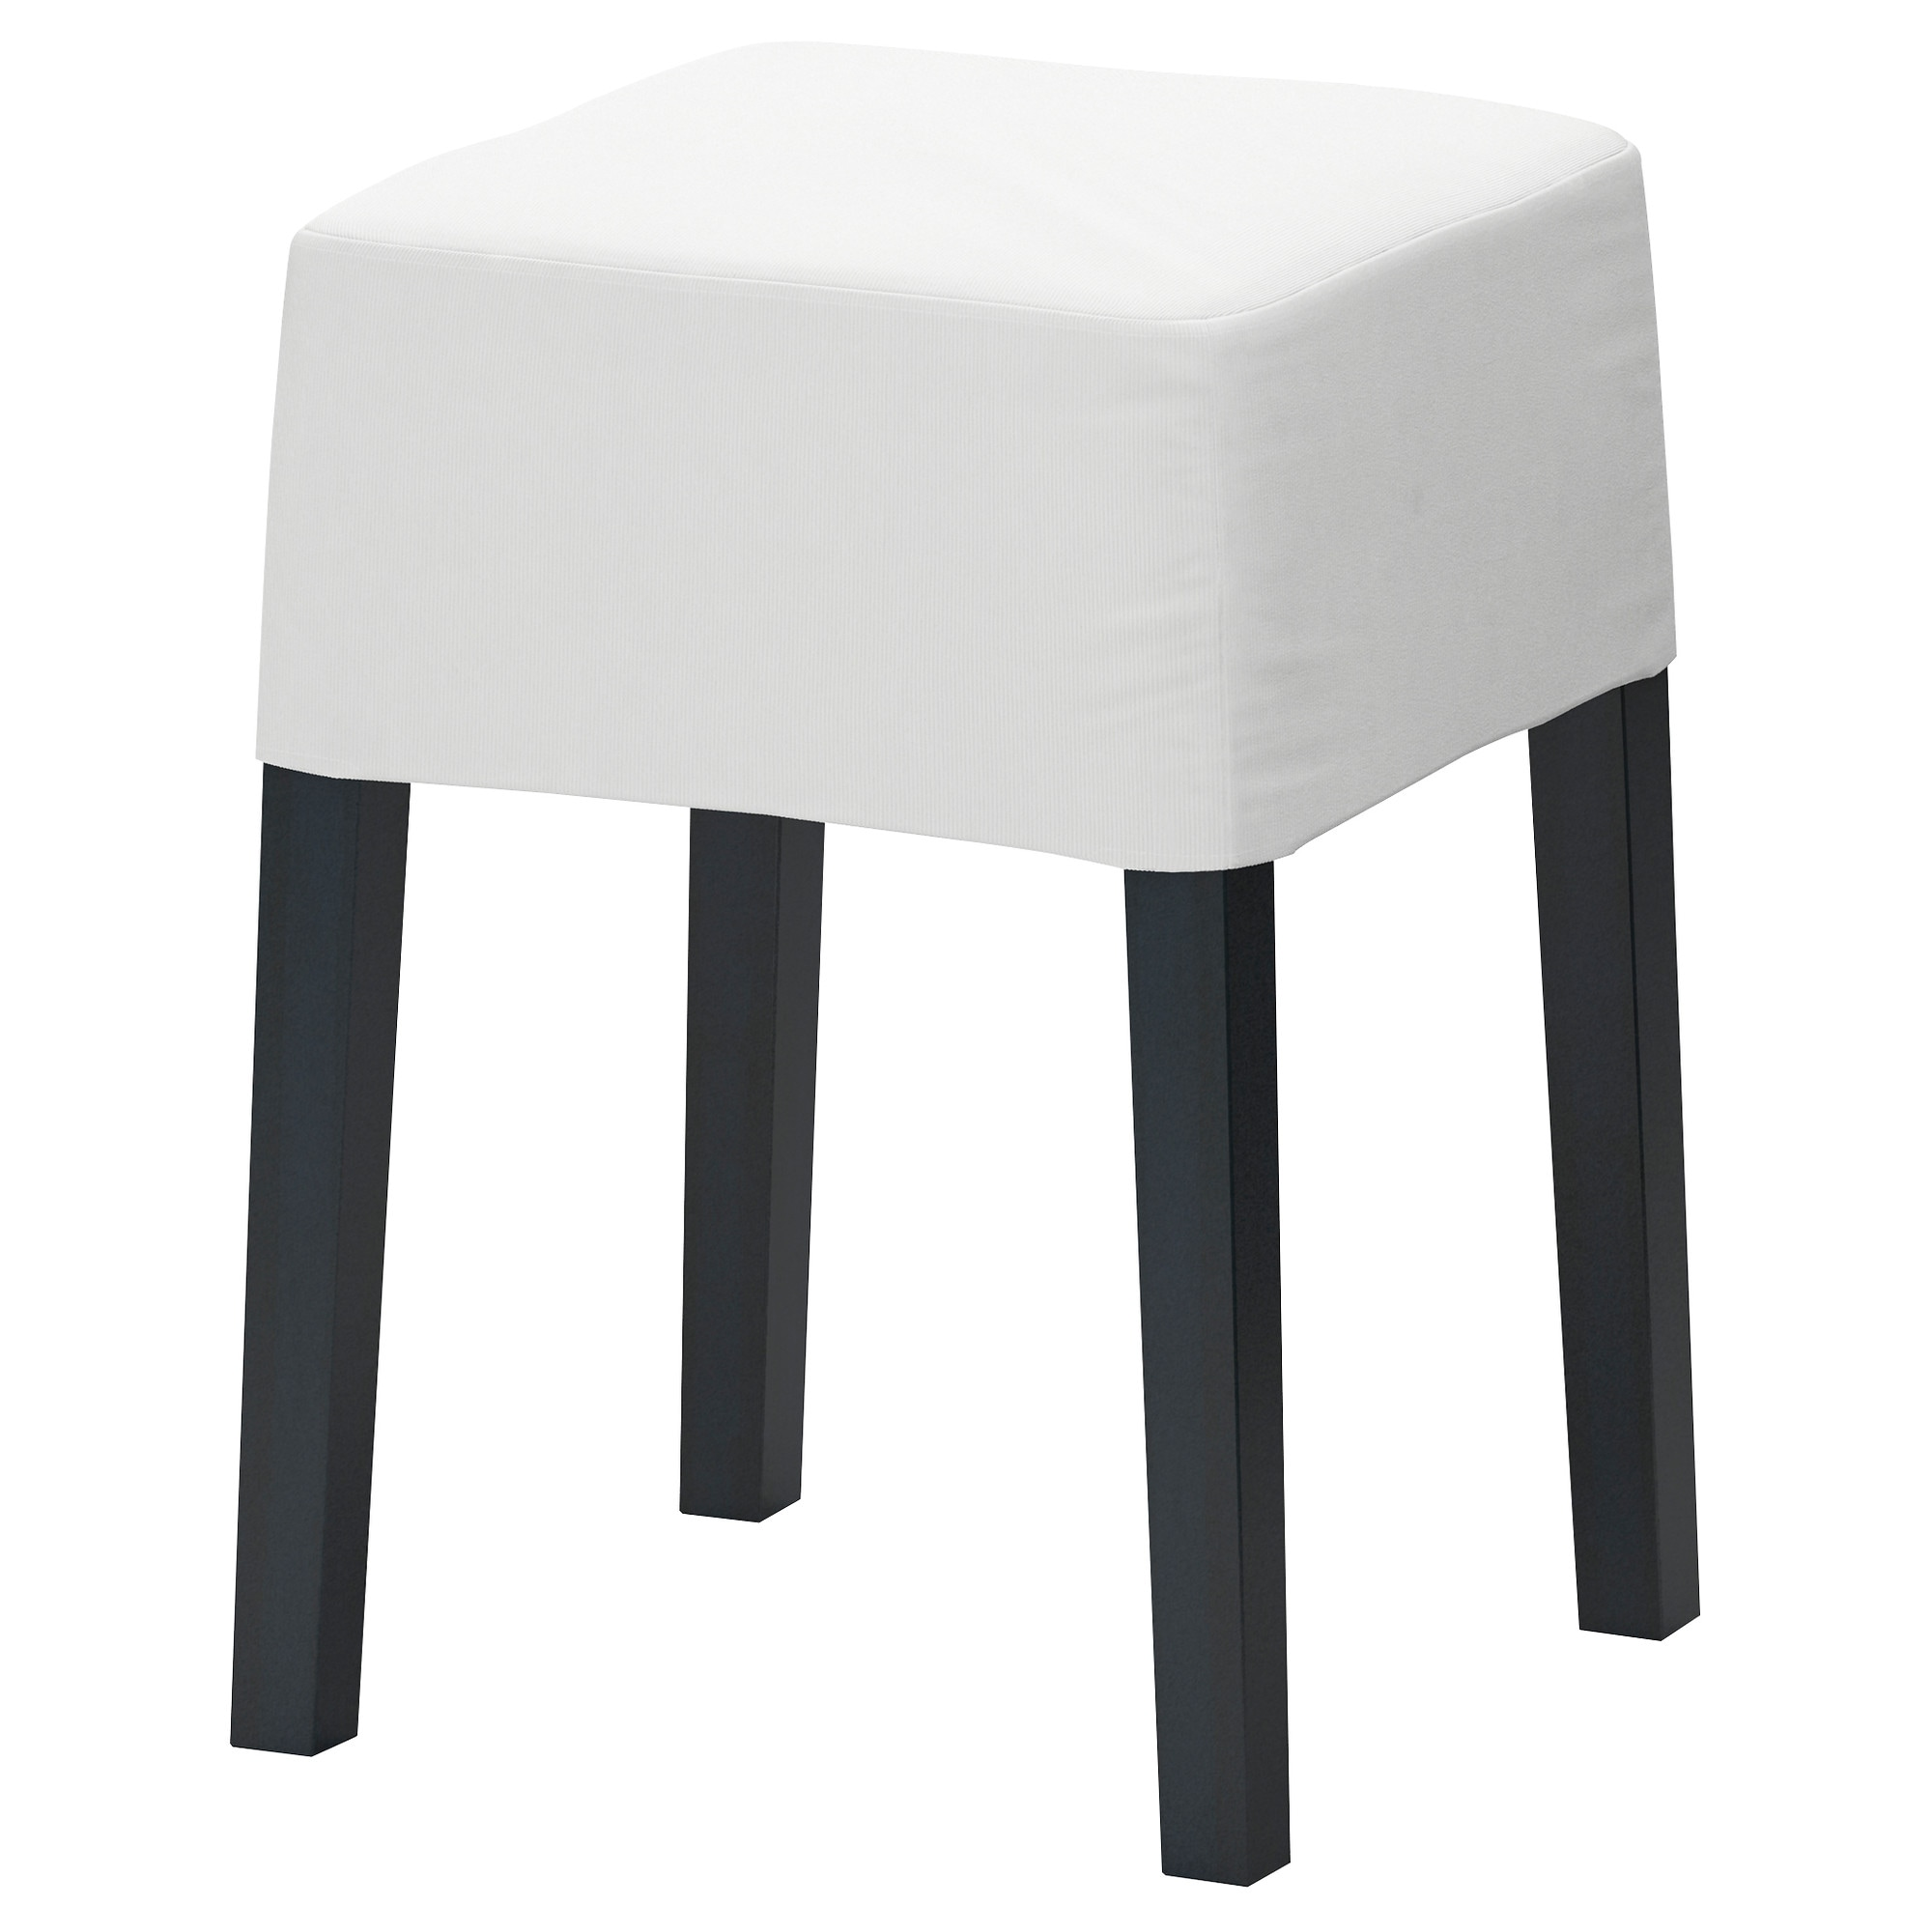 Wonderful NILS Stool, Black, Blekinge White Tested For: 243 Lb Seat Width: 13